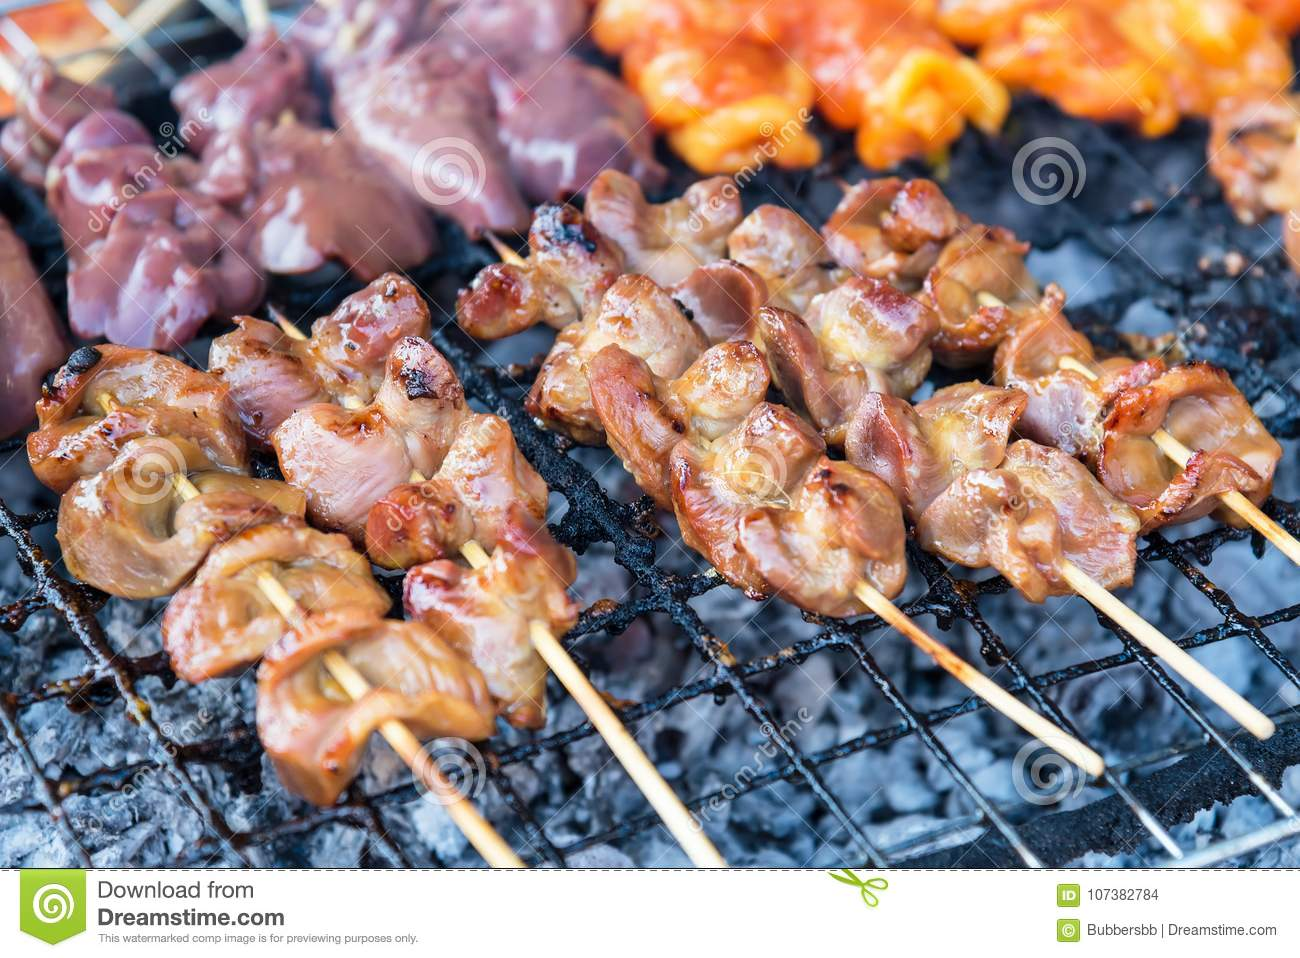 Chicken internal organs grill on charcoal stove at sattahip mark download chicken internal organs grill on charcoal stove at sattahip mark stock photo image of ccuart Choice Image